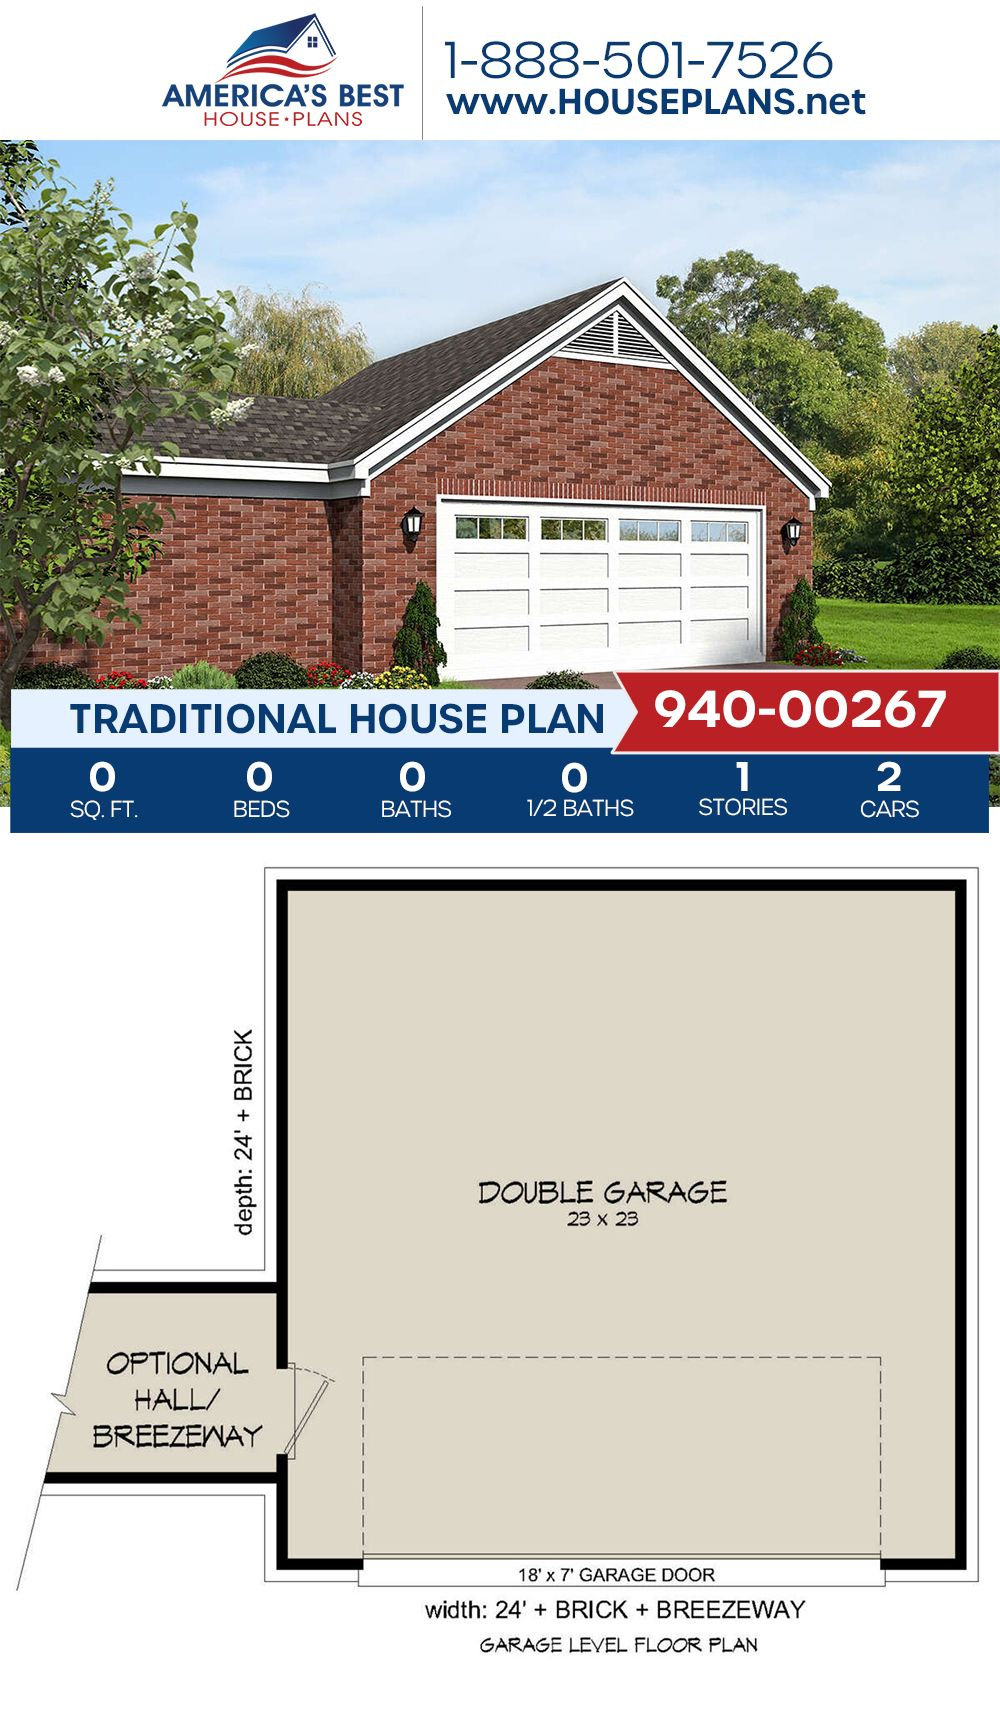 House Plan 940 00267 Traditional Plan 0 Square Feet House Plans Traditional House Plan Traditional House